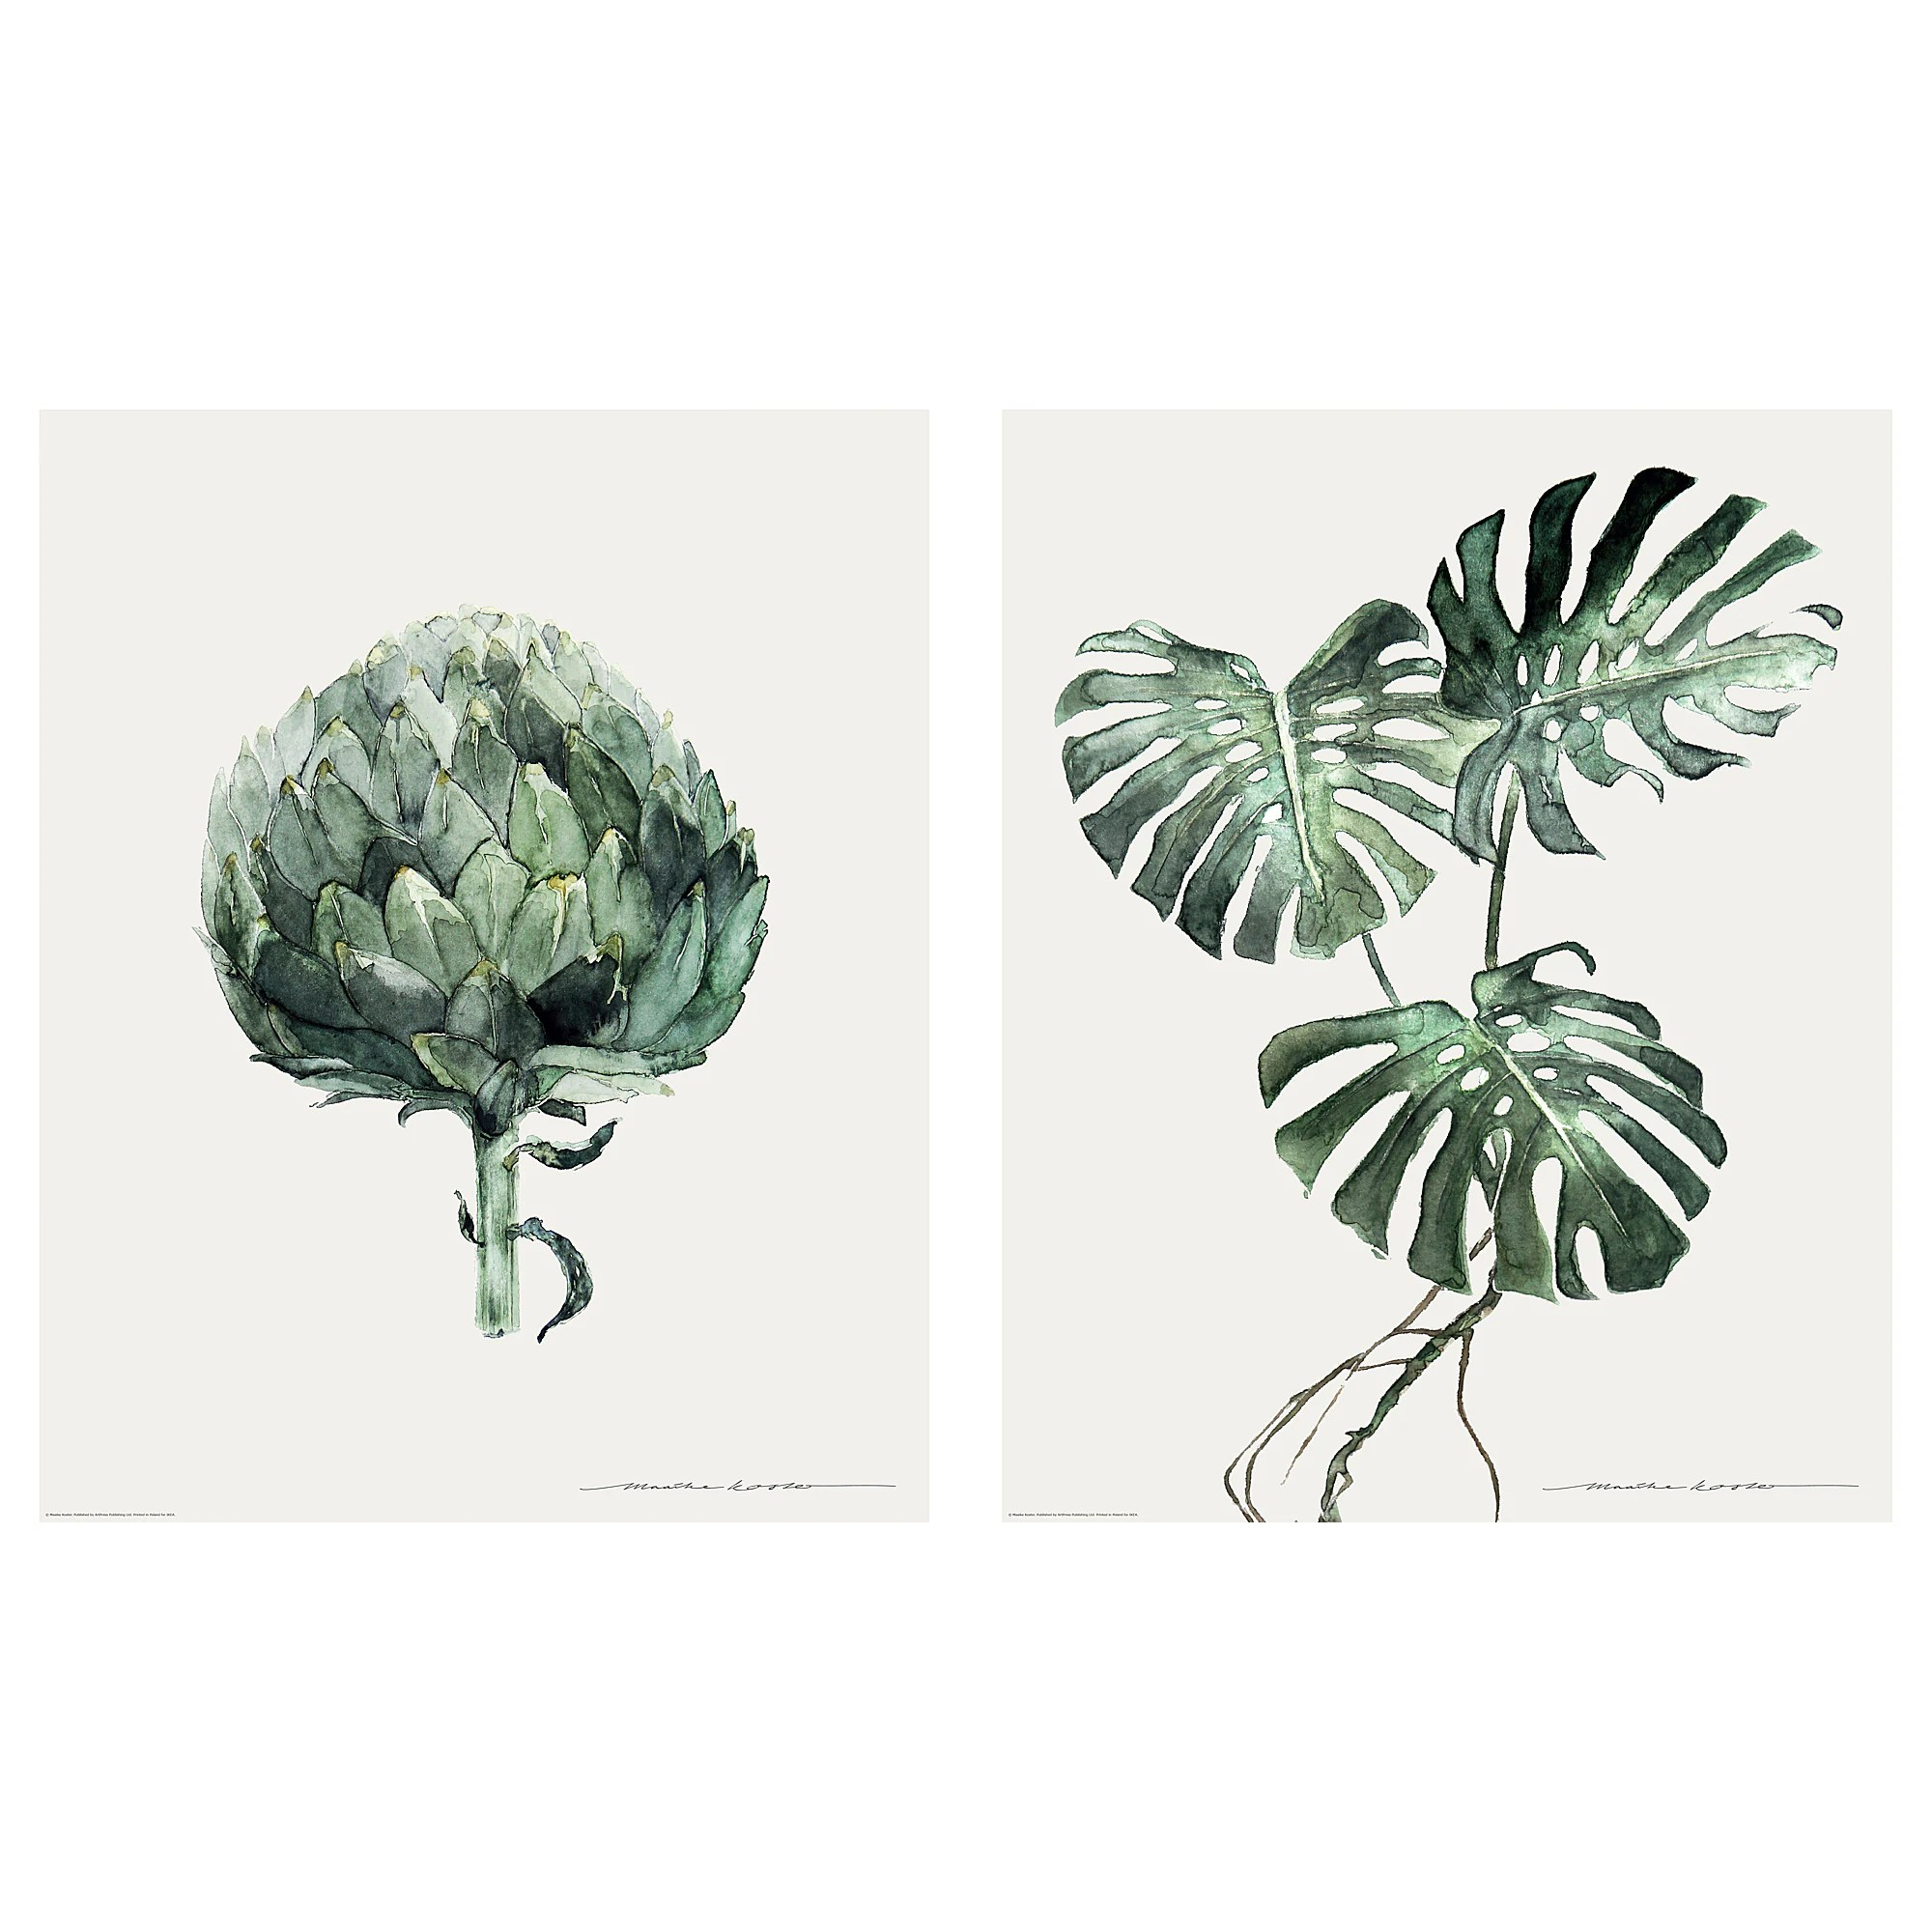 Ikea Poster Poster Set Of 2 Tvilling Green Leaves